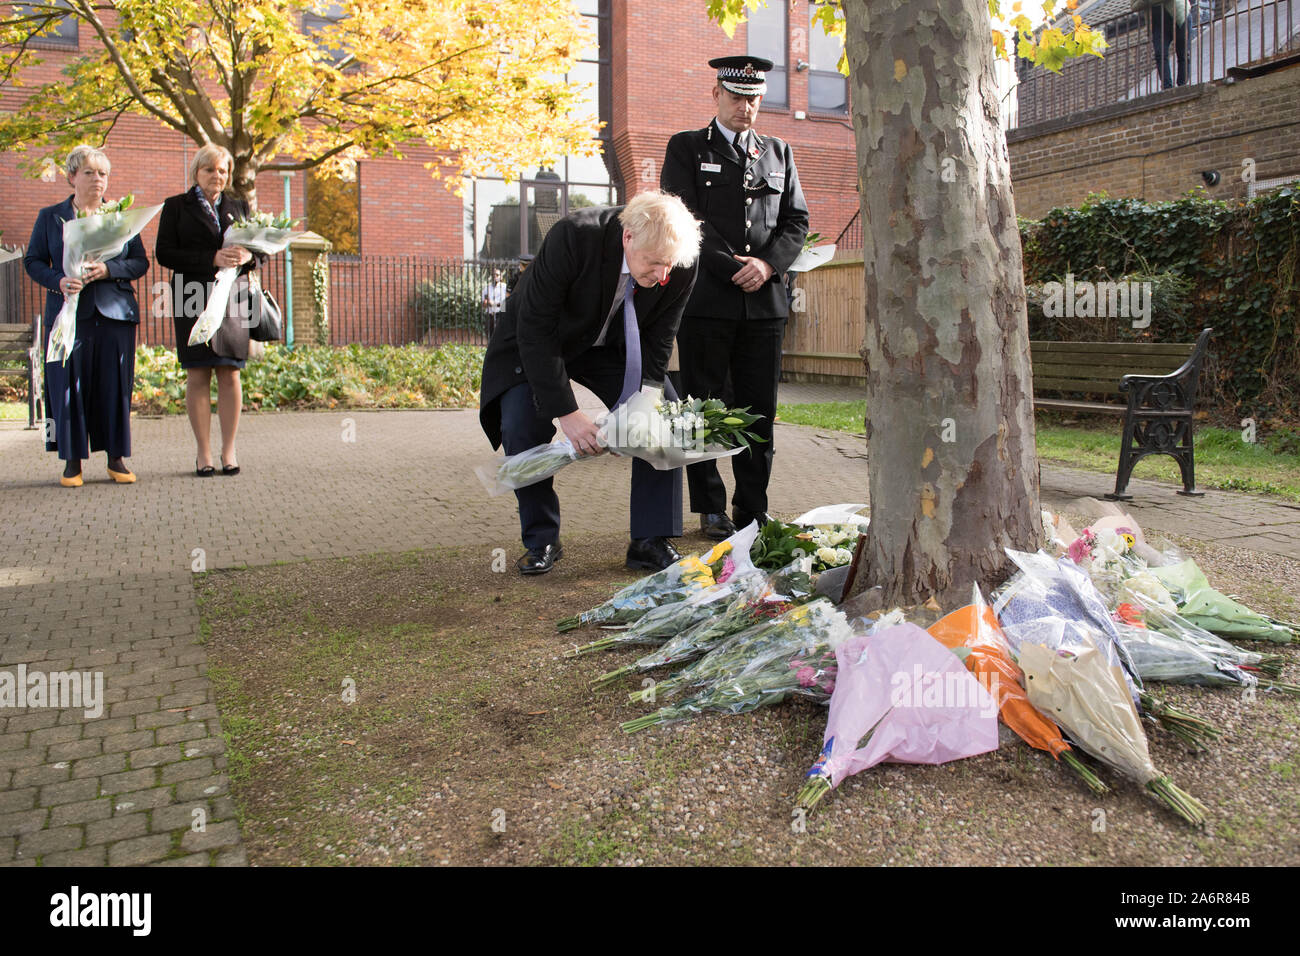 Prime Minister Boris Johnson stands with the Chief Constable of Essex Police, Ben-Julian Harrington, as he lays flowers during a visit to Thurrock Council Offices in Essex after the bodies of 39 people were found in a lorry container last week. Stock Photo